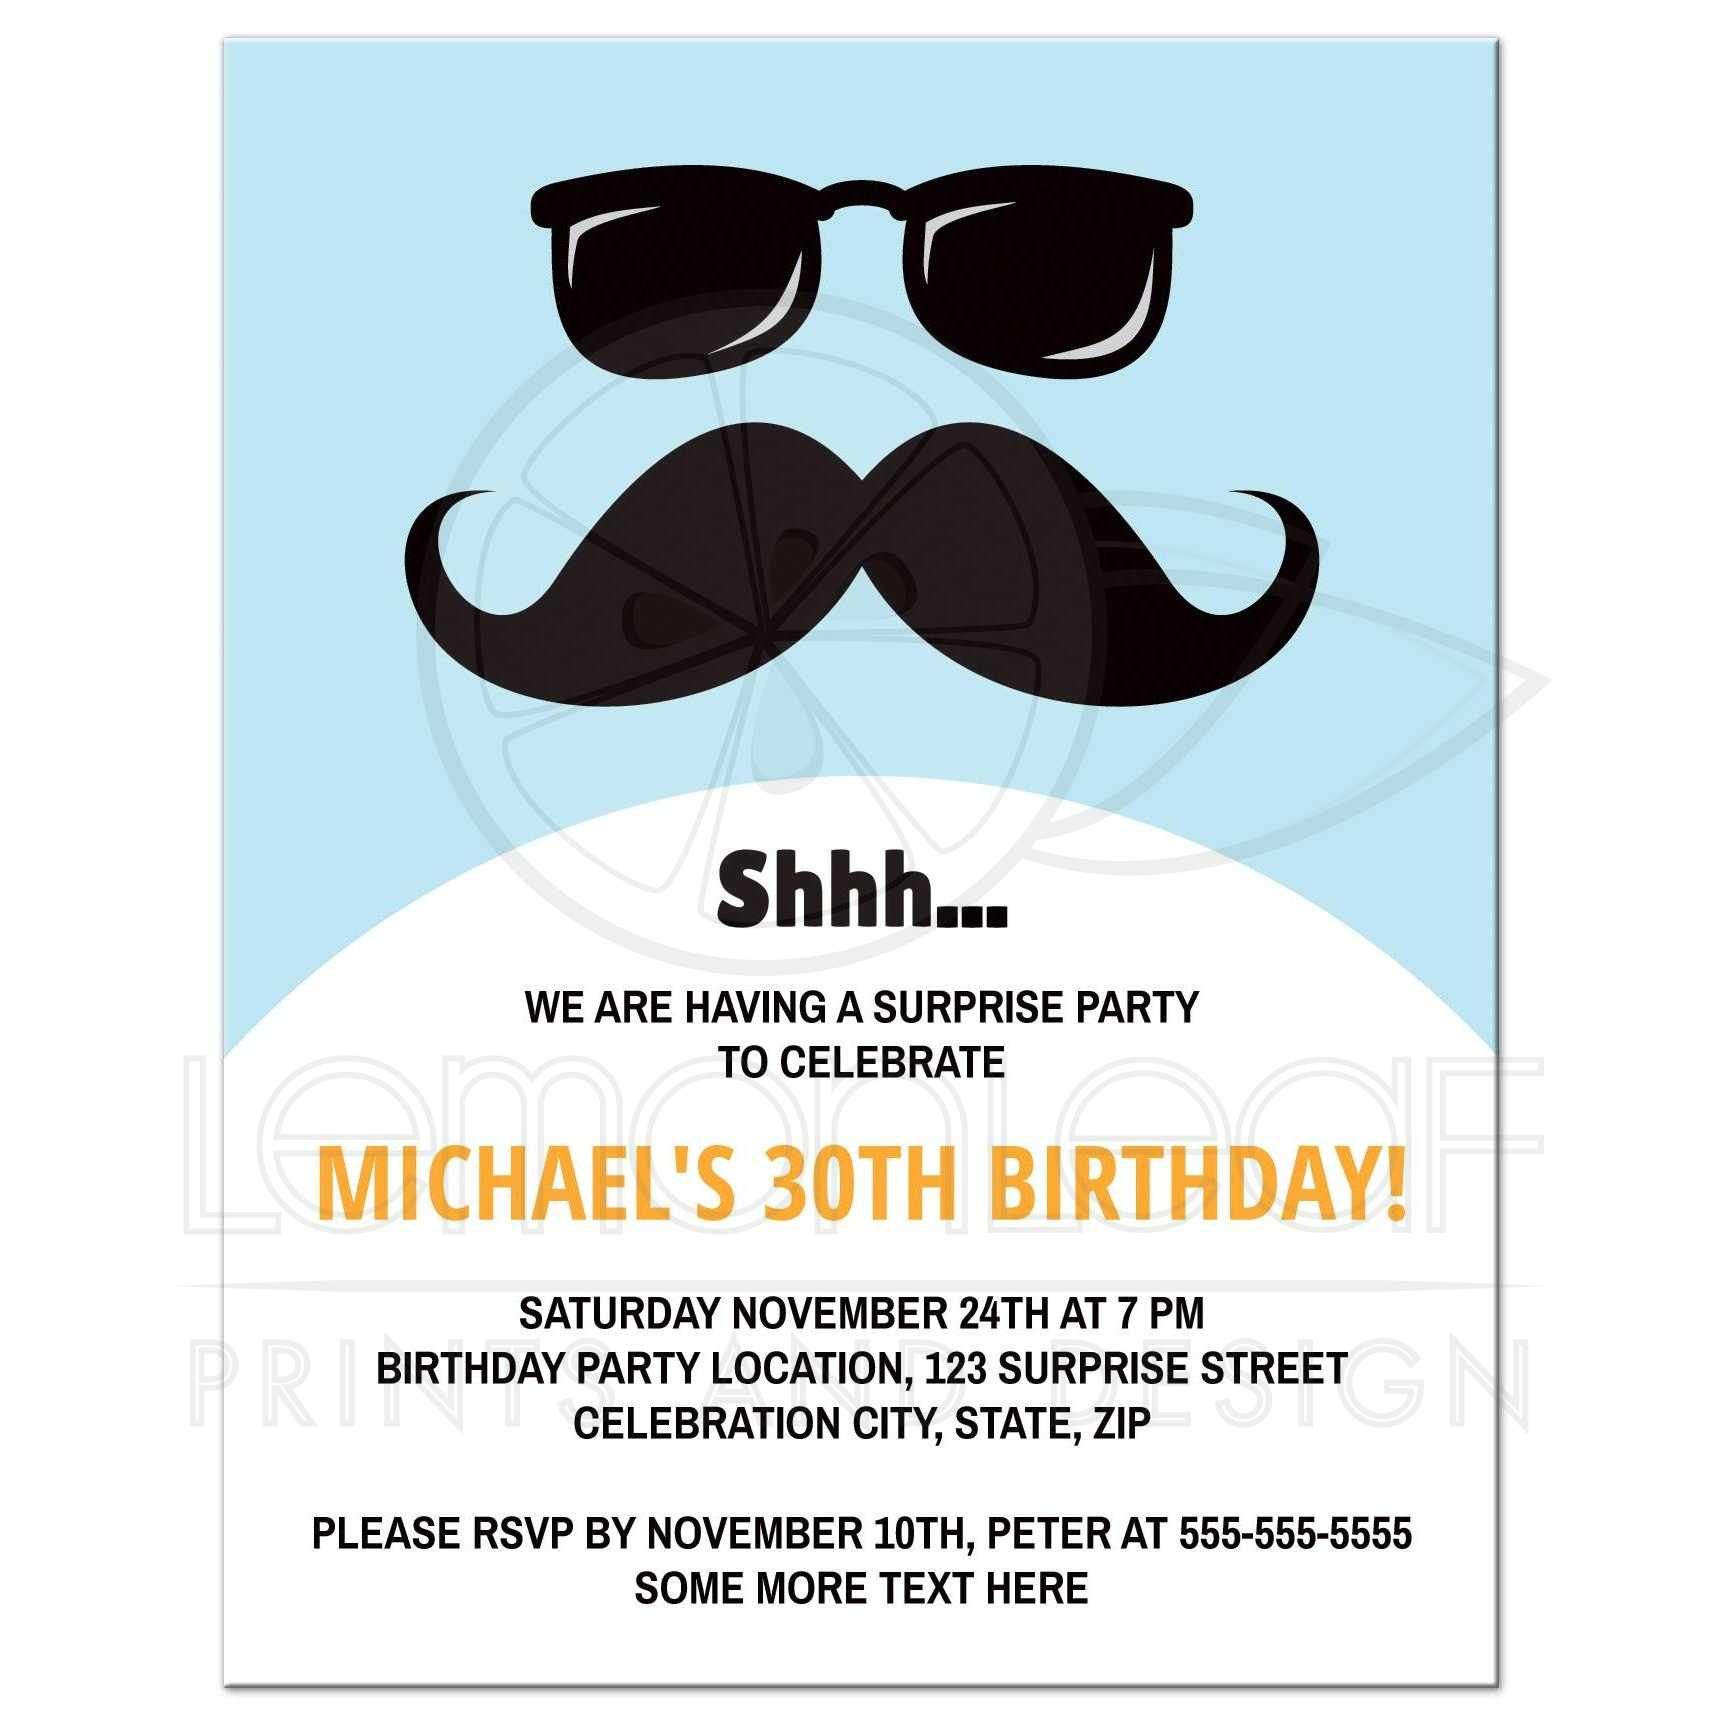 Incognito mustache and sunglasses surprise birthday party invitation – Shhh Surprise Party Invitations